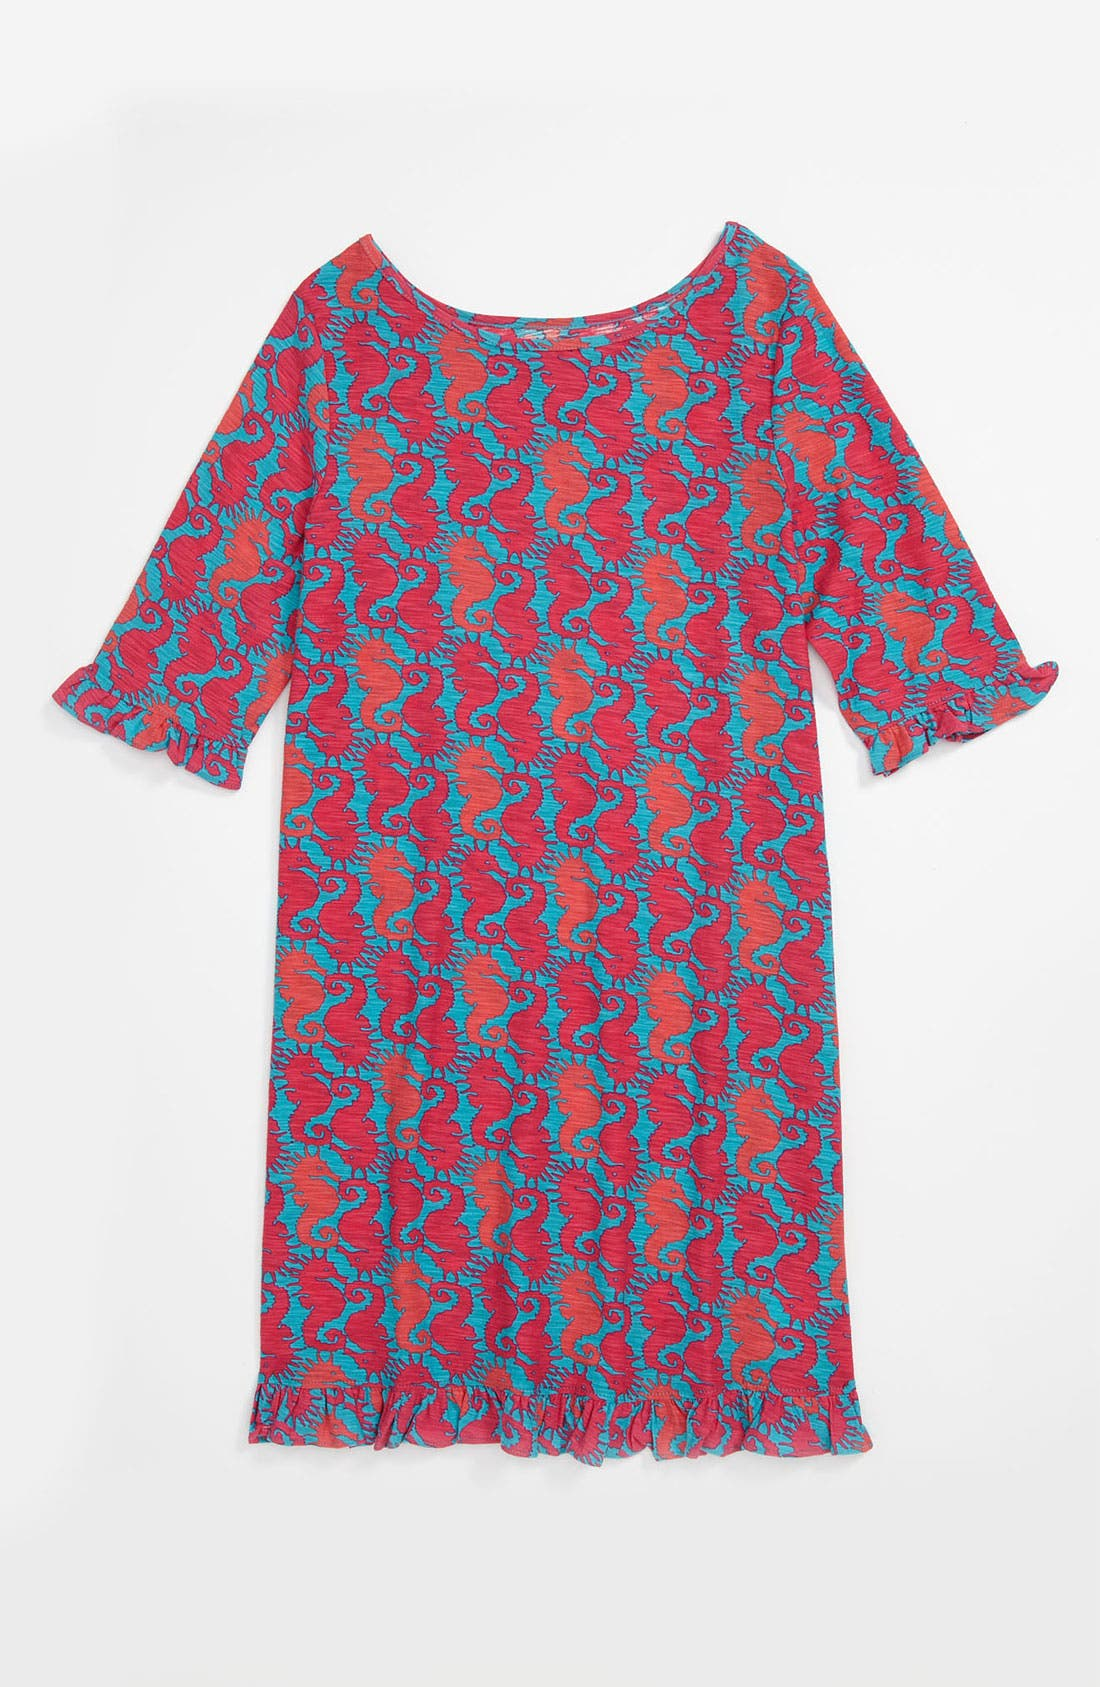 Alternate Image 1 Selected - Lilly Pulitzer® 'Linney' Dress (Little Girls & Big Girls)